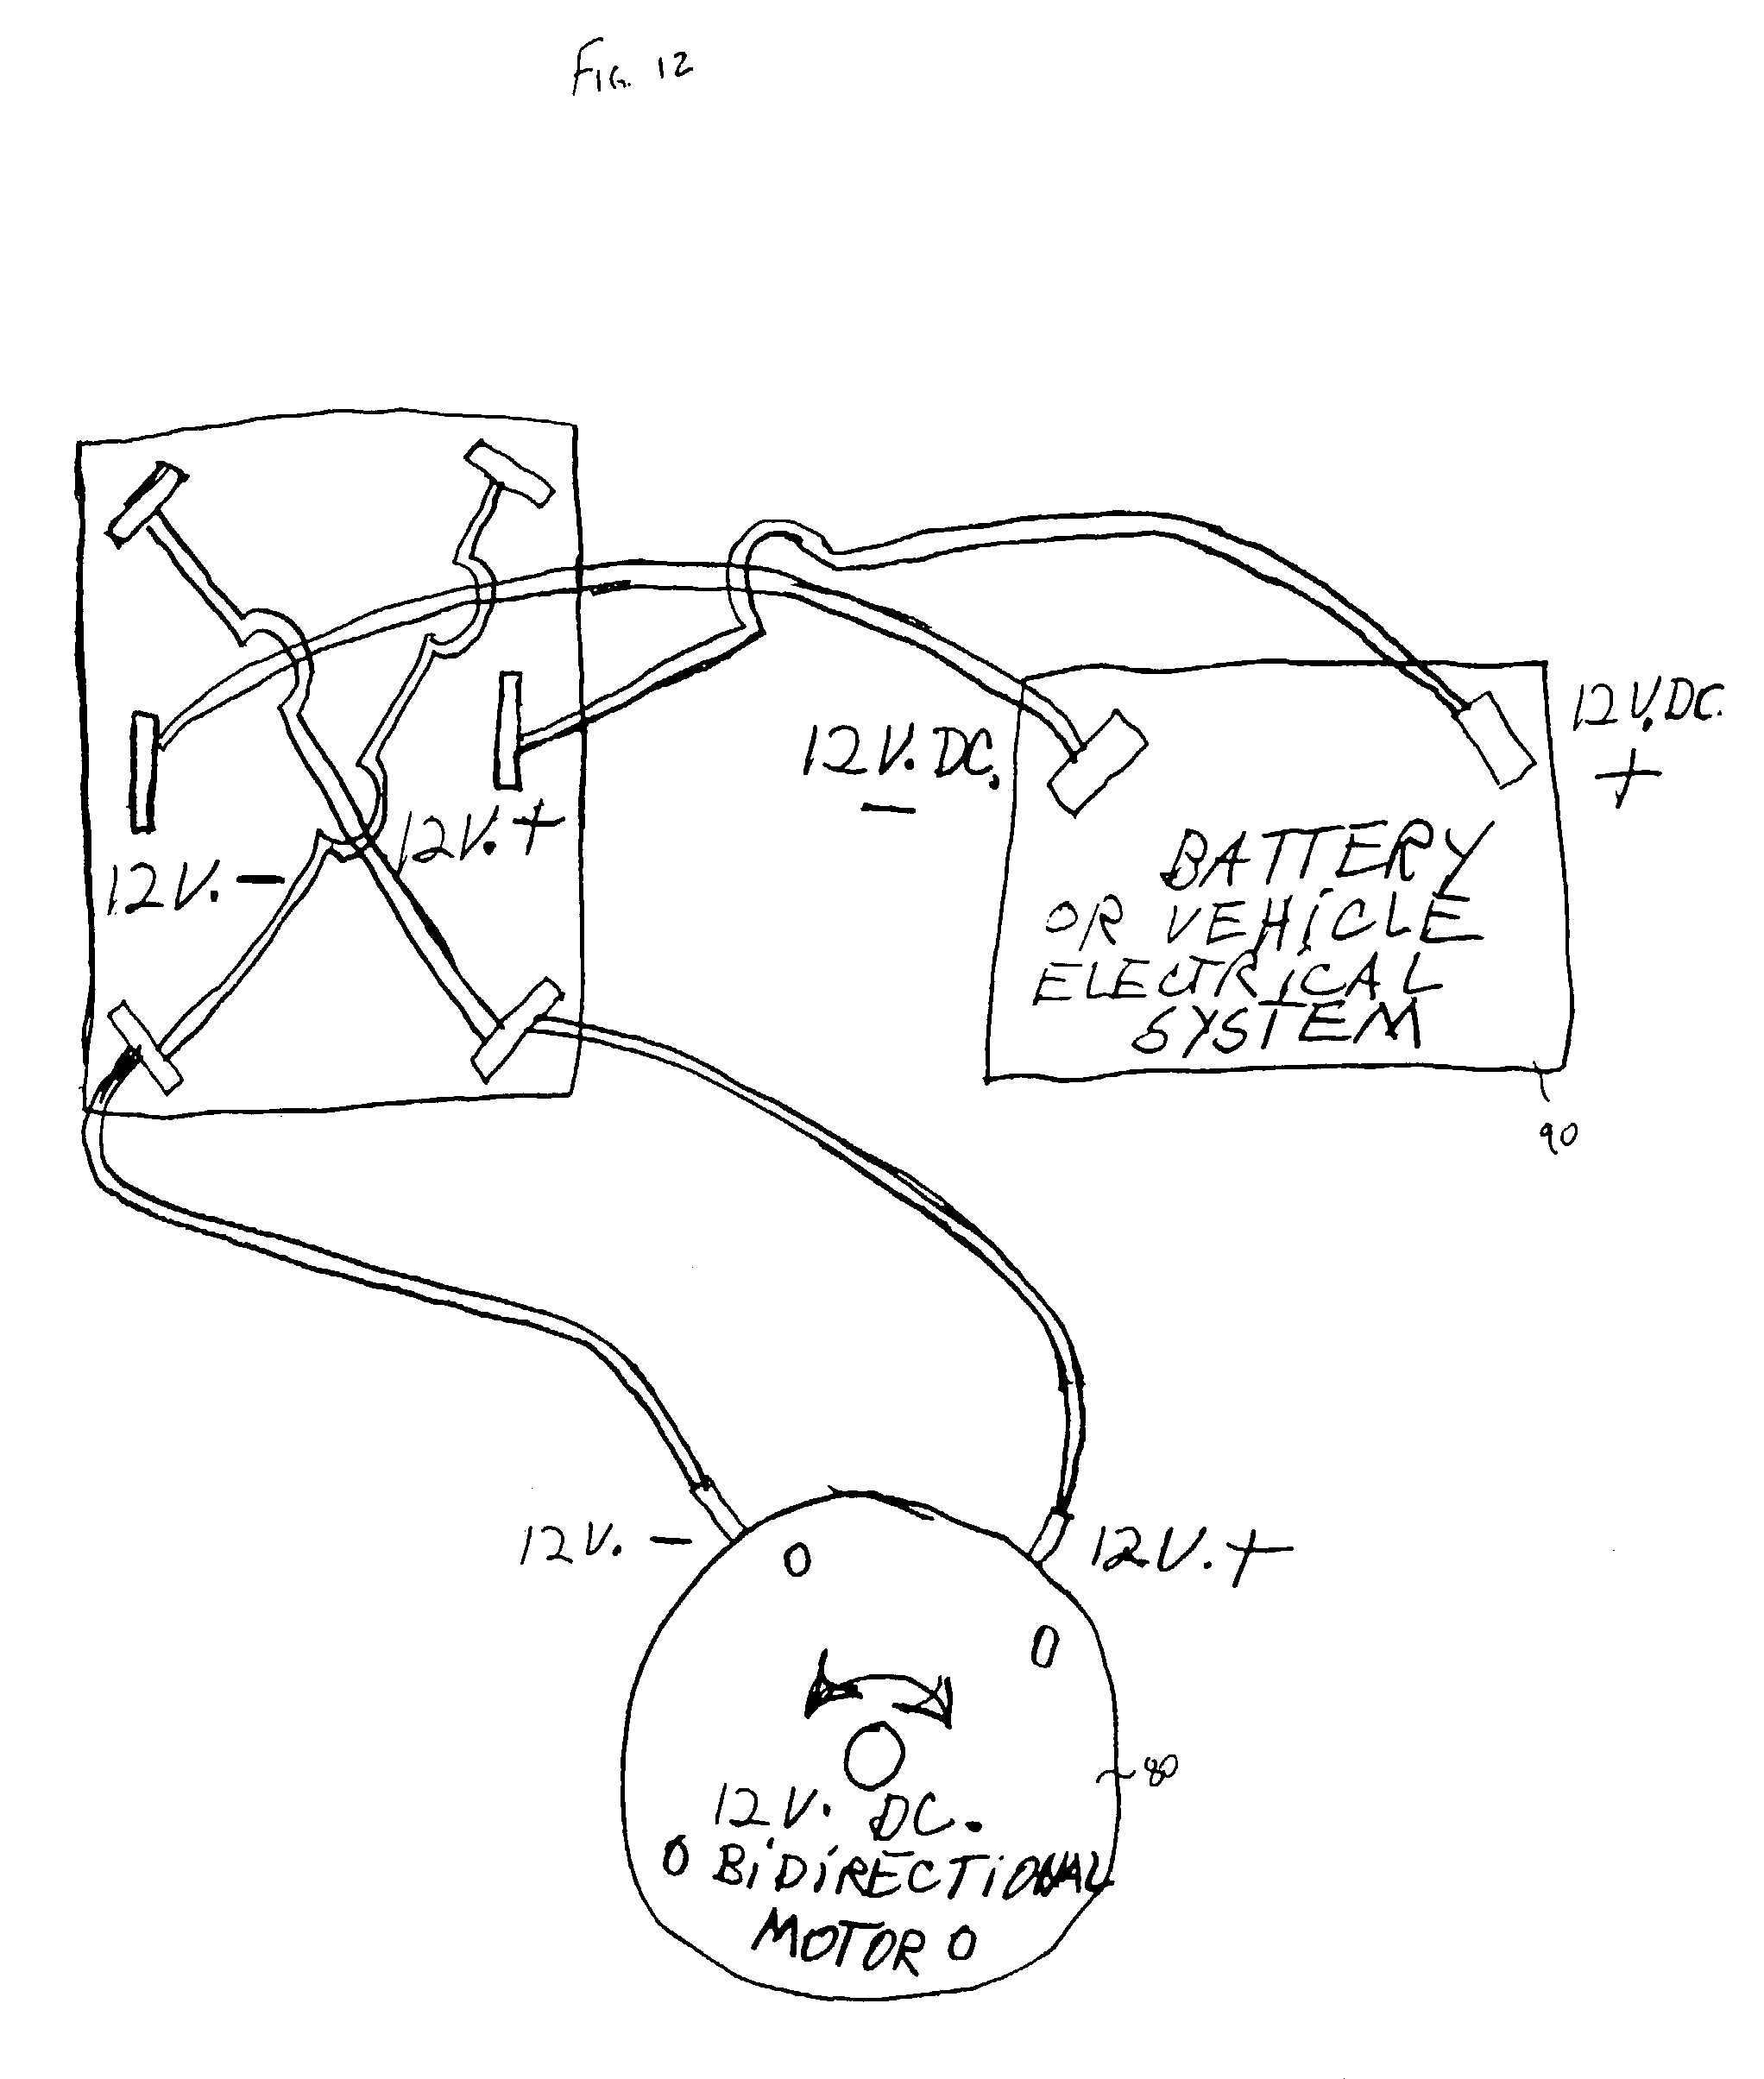 Snowbear Wiring Diagram Database Pace Edwards Patent Us6964121 All Terrain Vehicle Mount Assembly For A Drawing